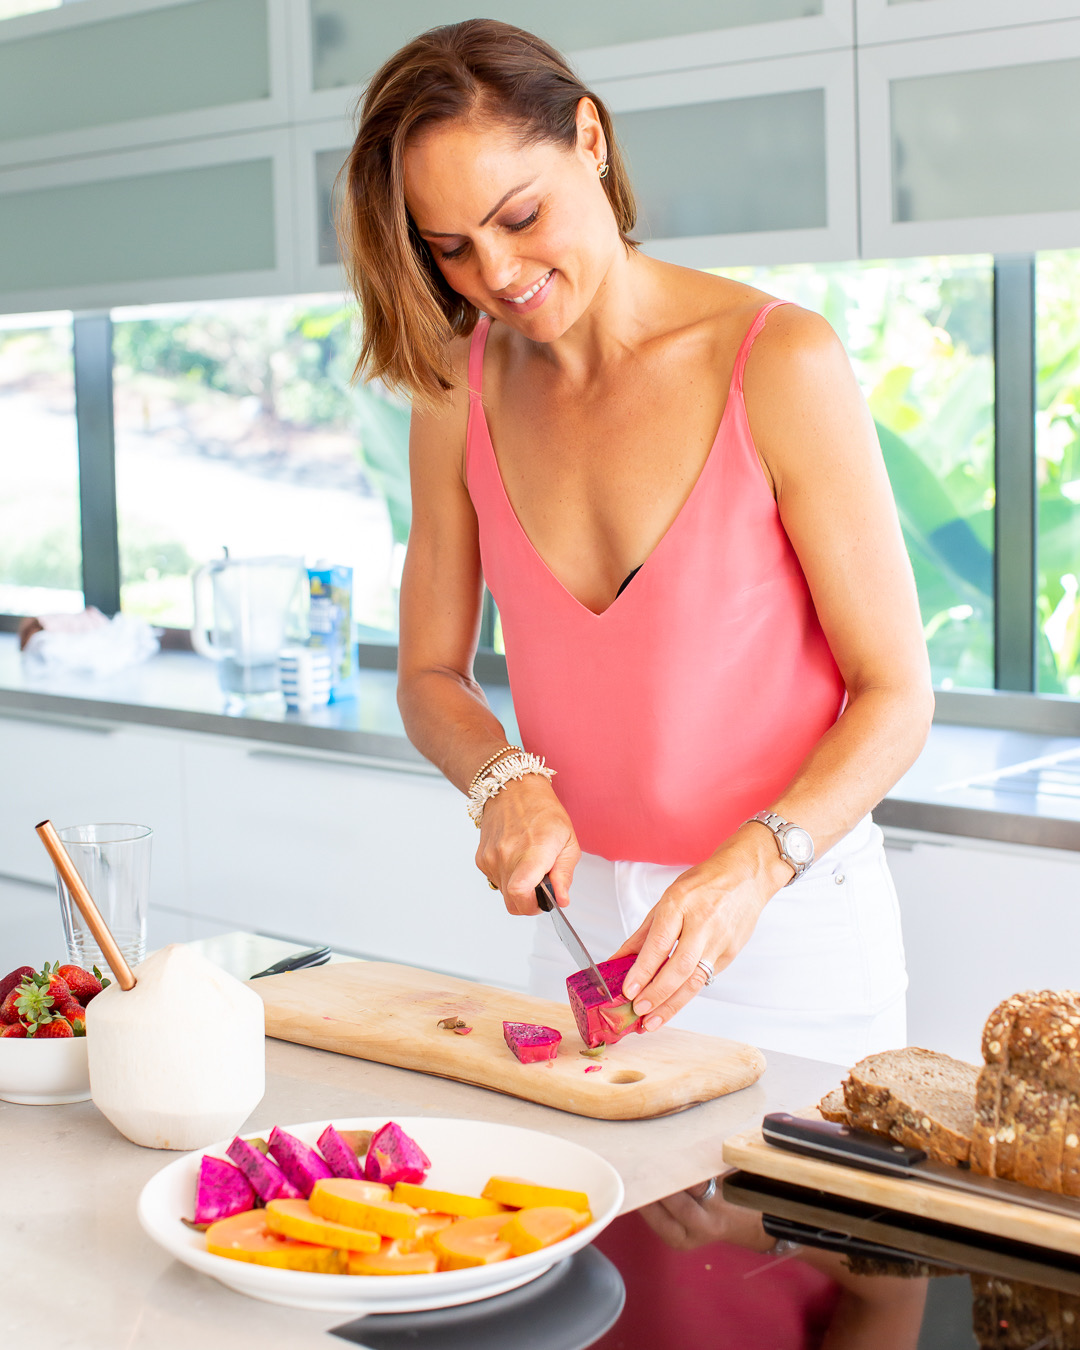 Back to school: 3 fast and nutritious spring breakfast ideas